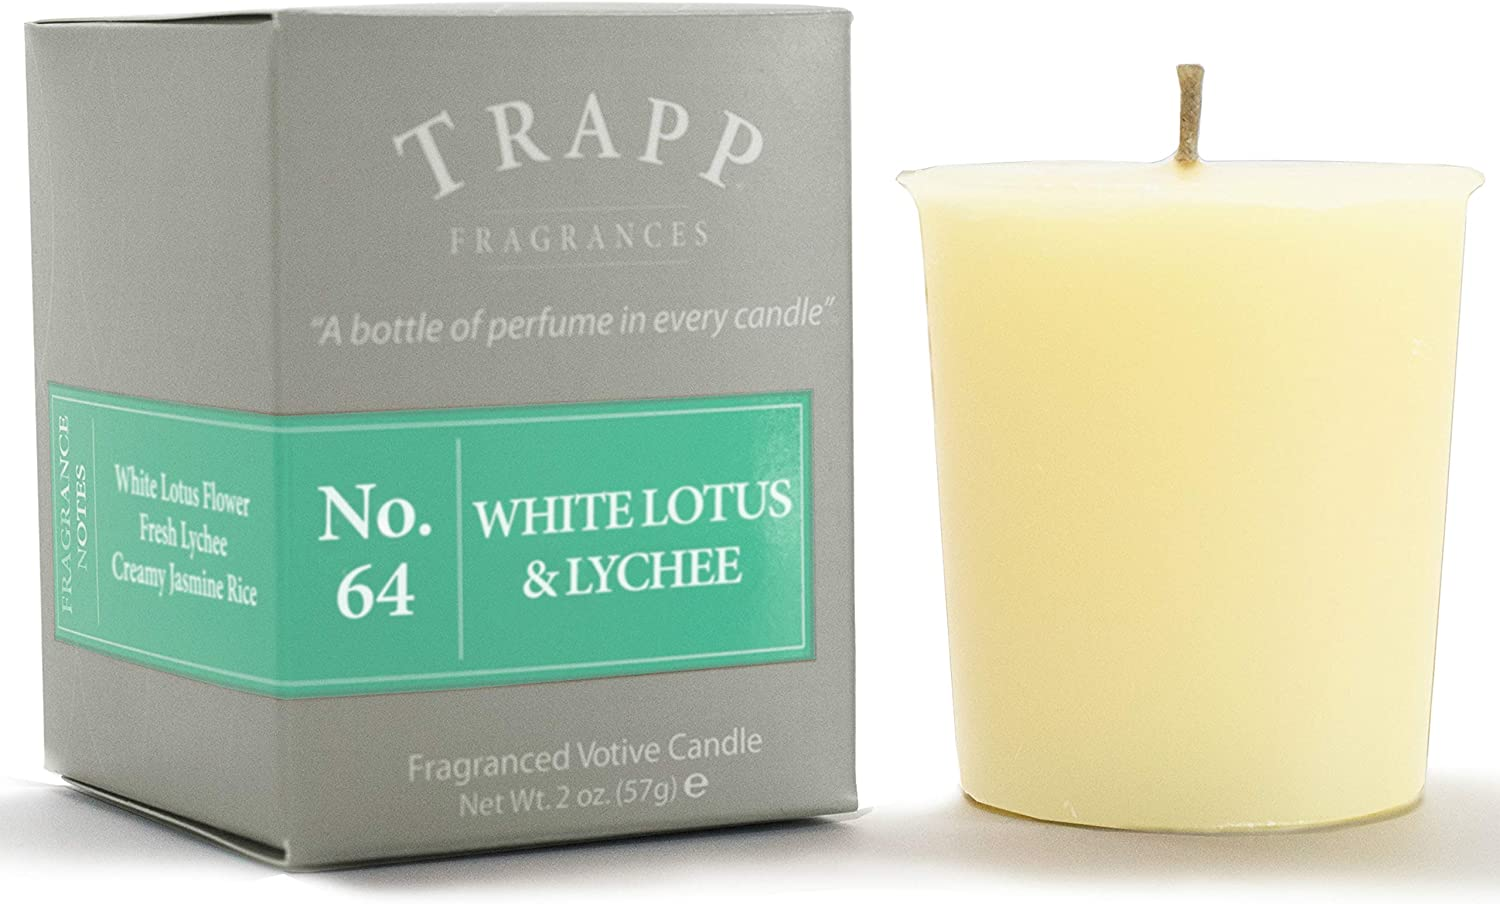 Trapp Signature Home Collection - No. 64 White Lotus & Lychee Votive Scented Candle 2 Ounce, Pack of 4